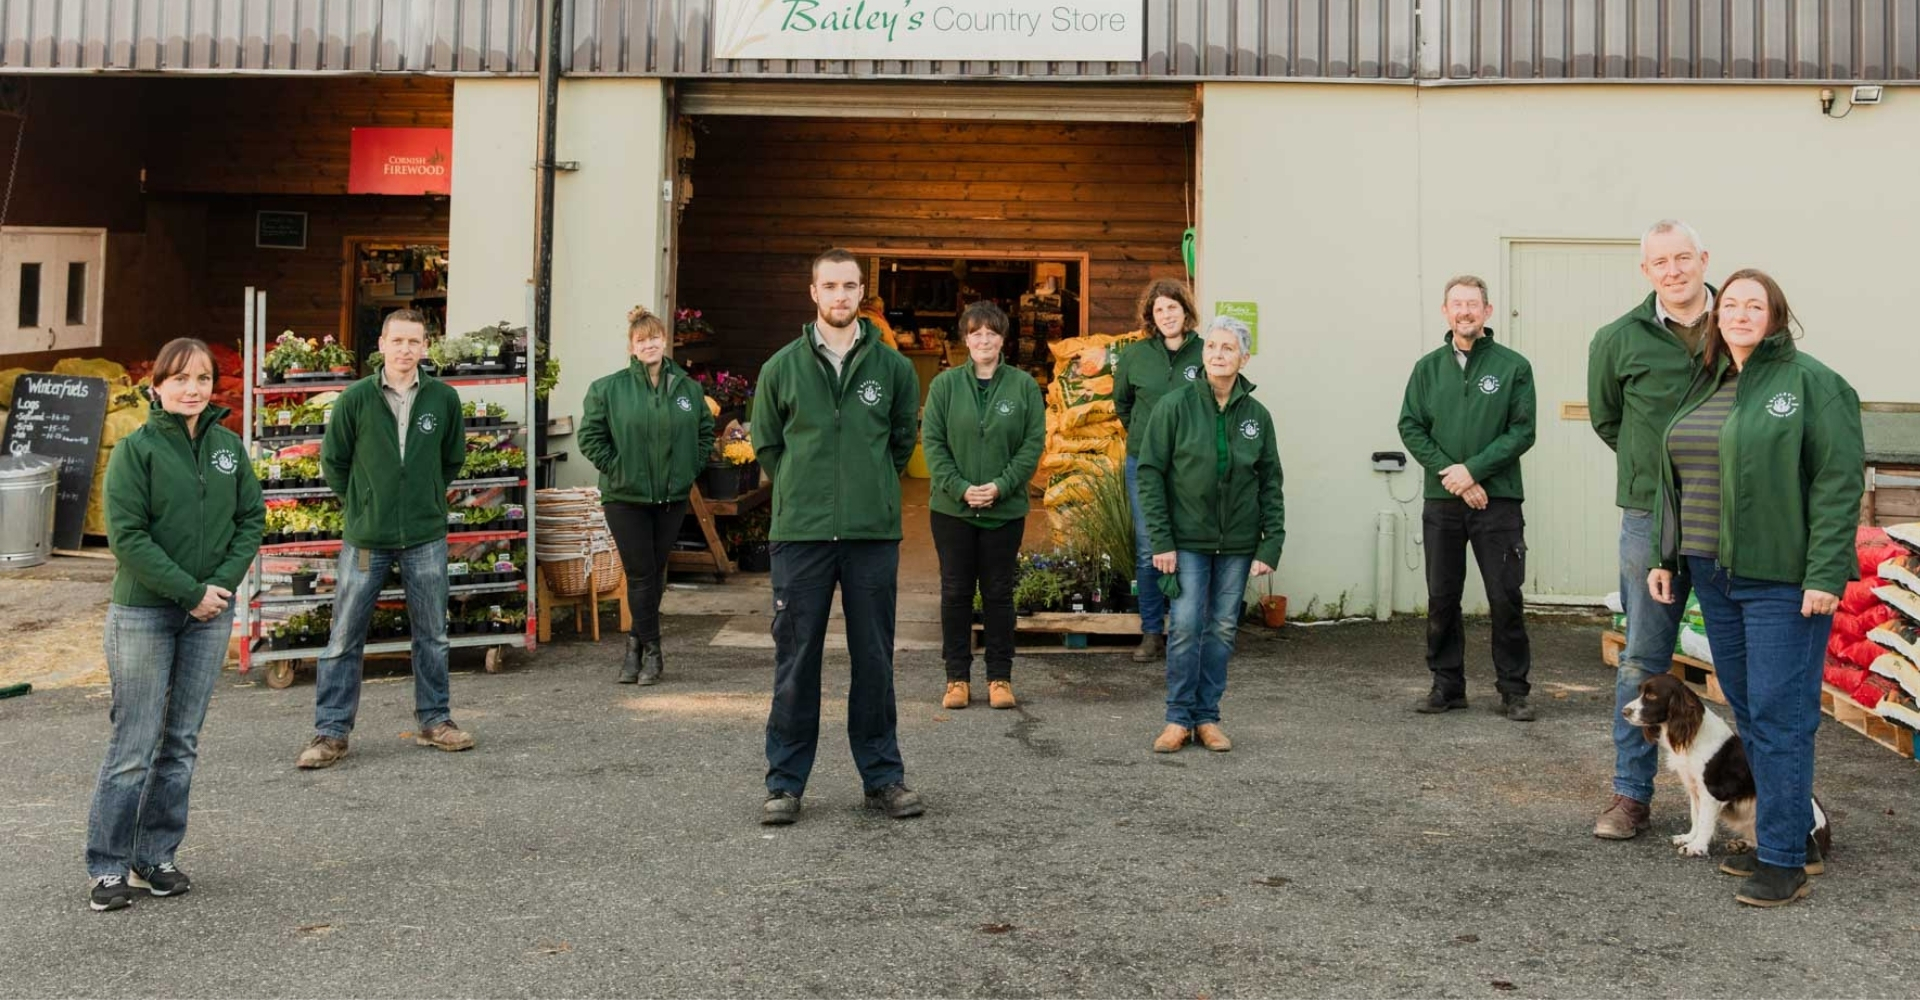 The team behind baileys country store in penryn